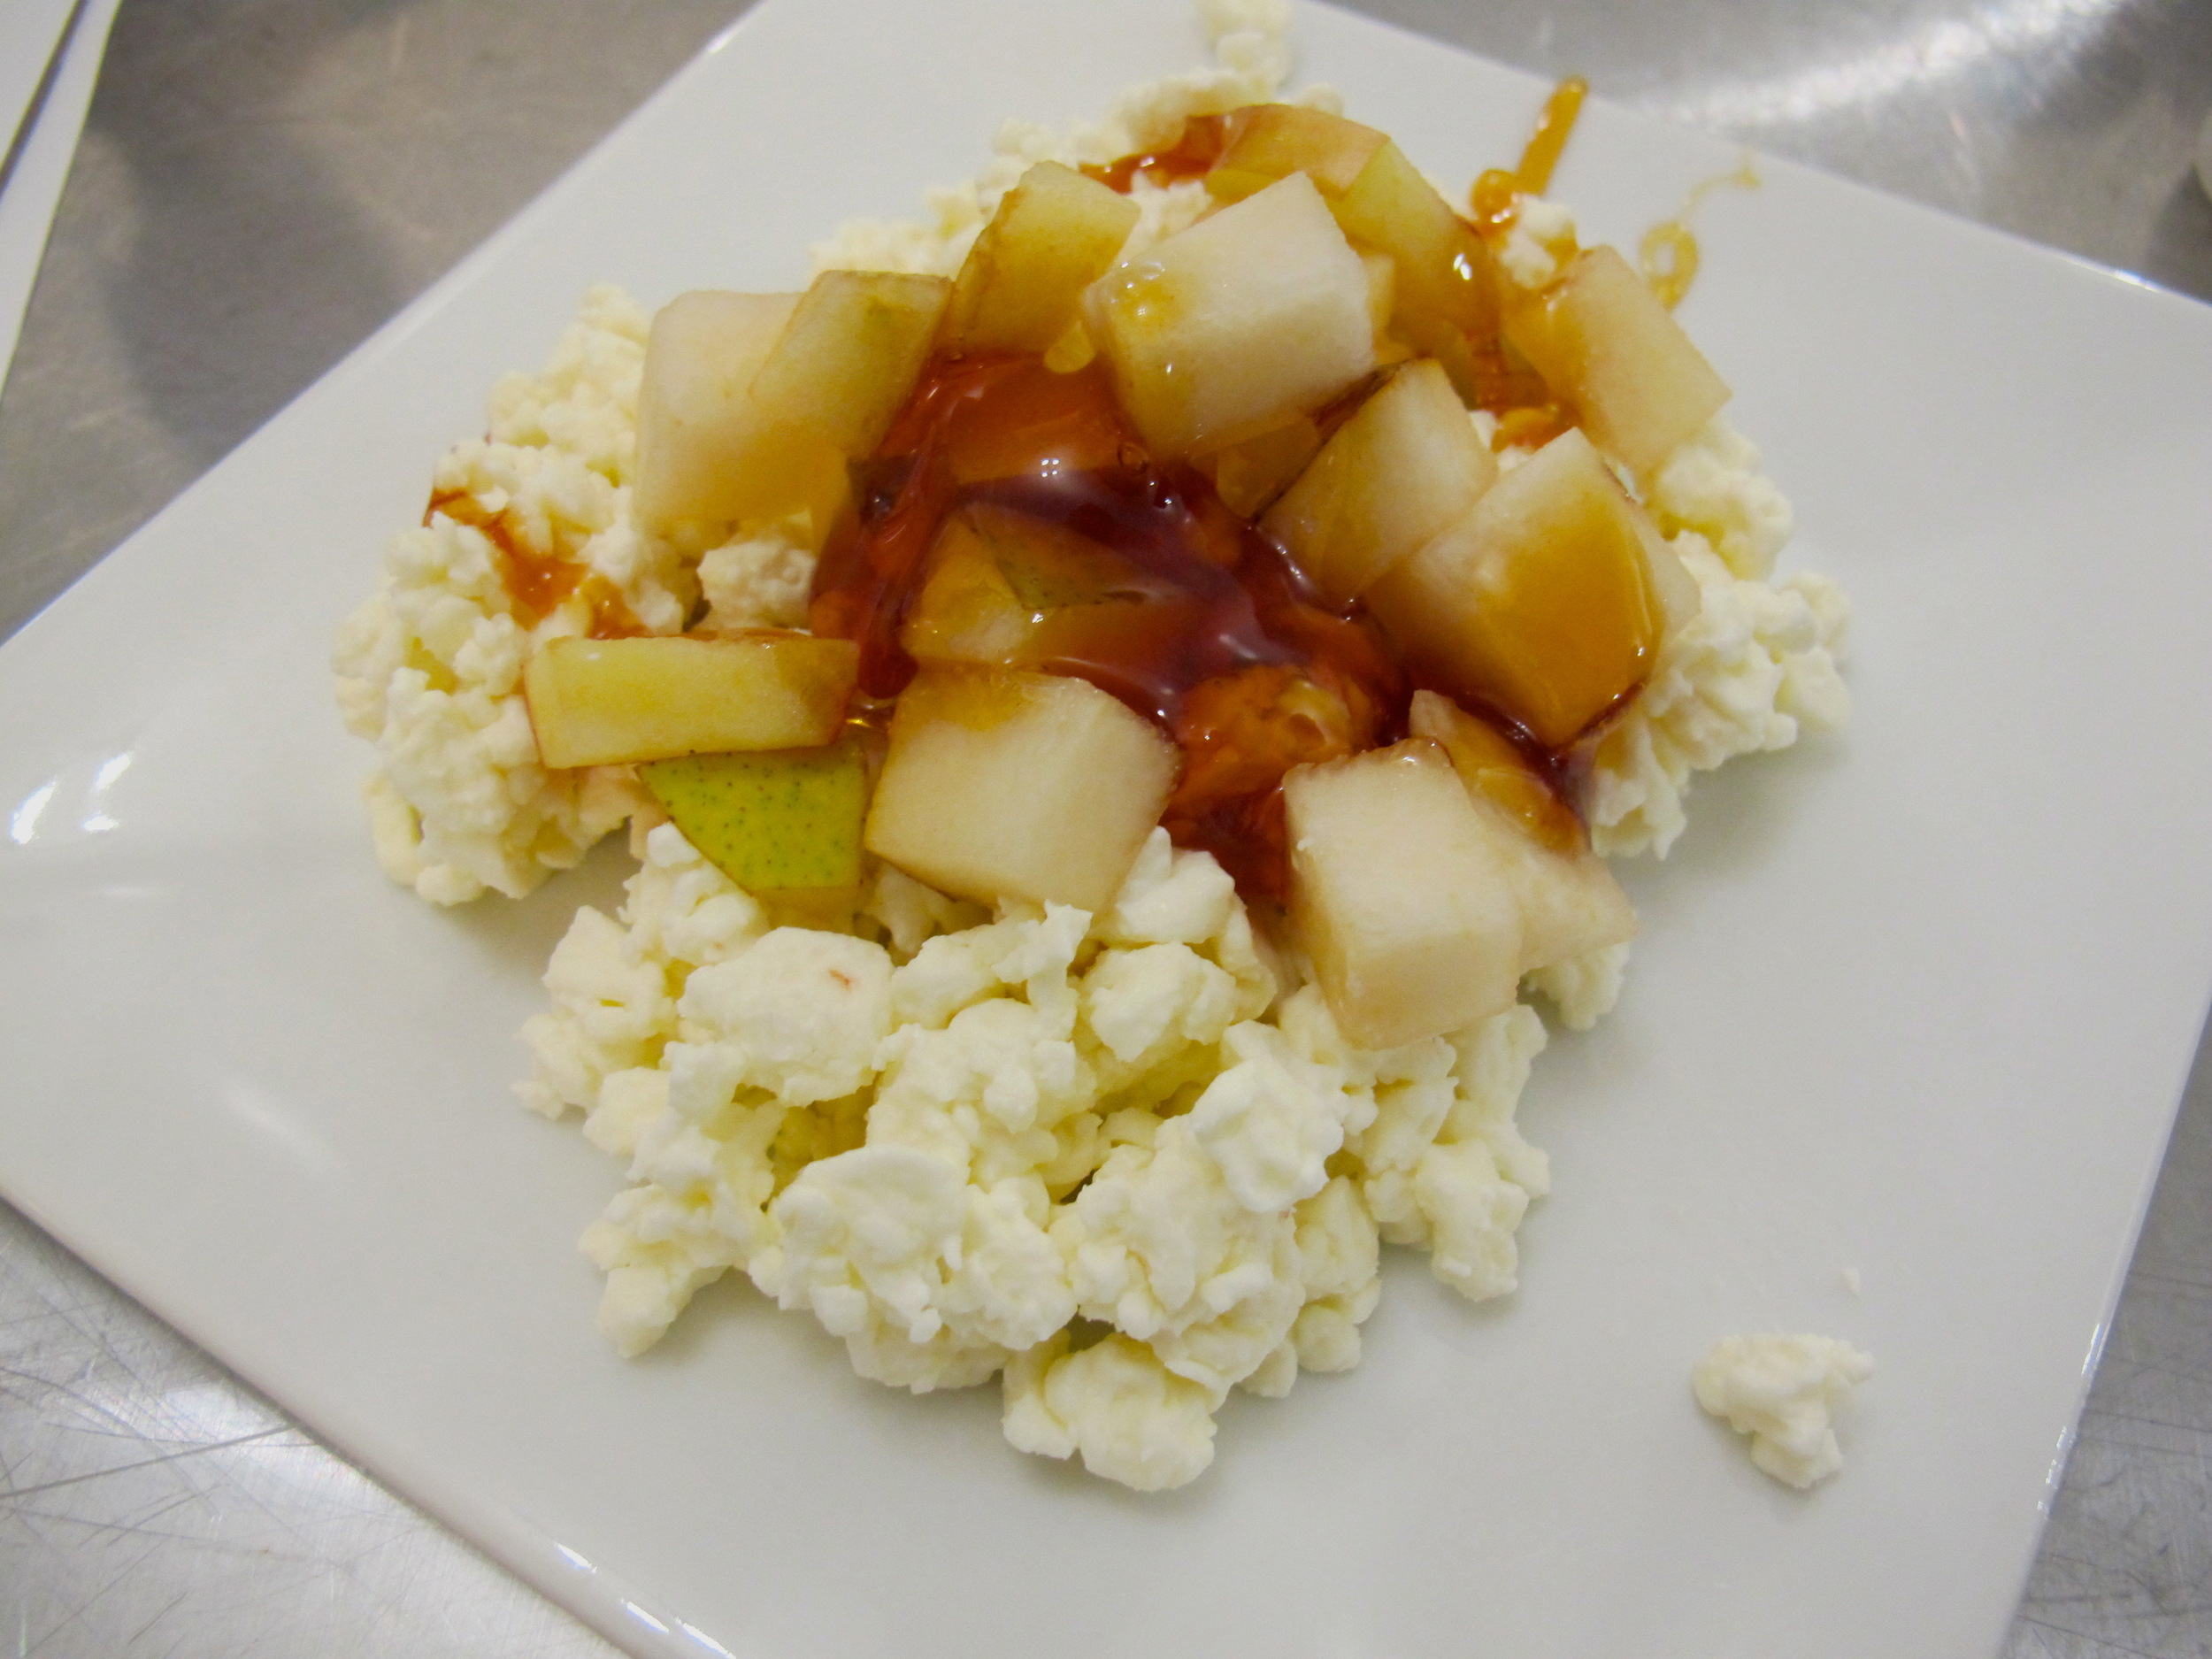 Homemade cottage cheese with apple and honey